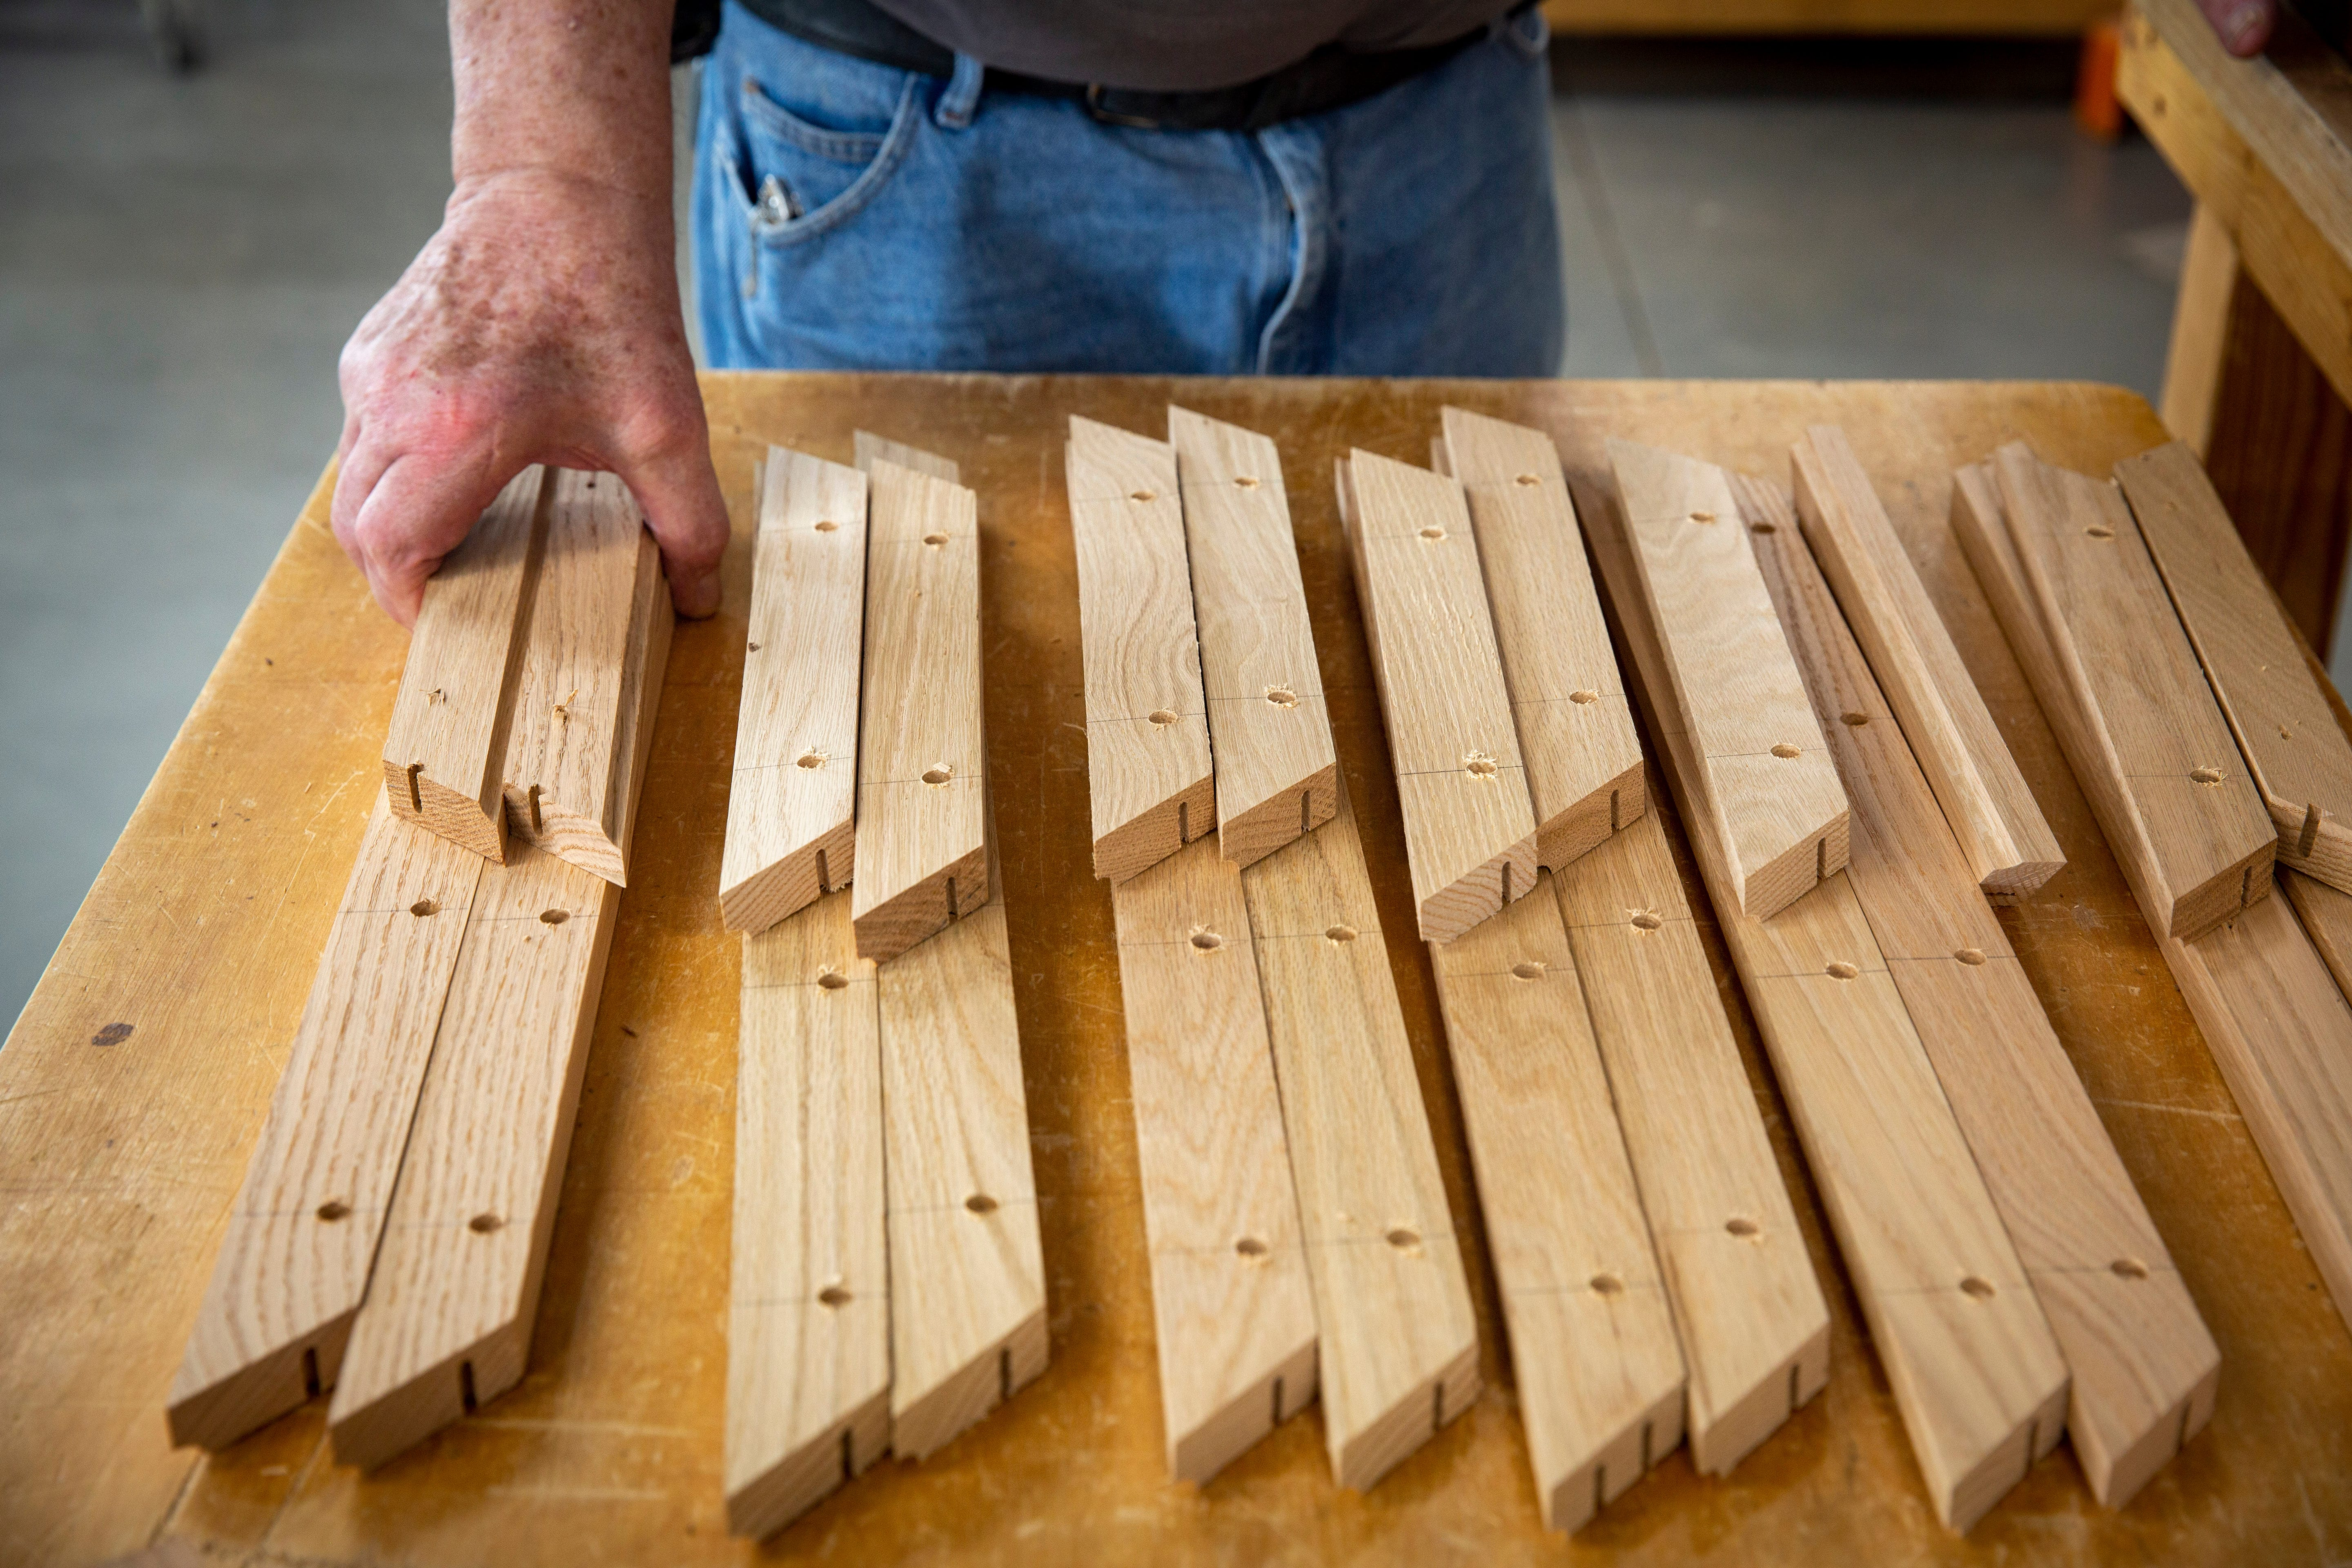 Denny Felton hand-builds coffins in the Trappist Casket workshop near the New Melleray Abbey southwest of Dubuque on March 16, 2021.